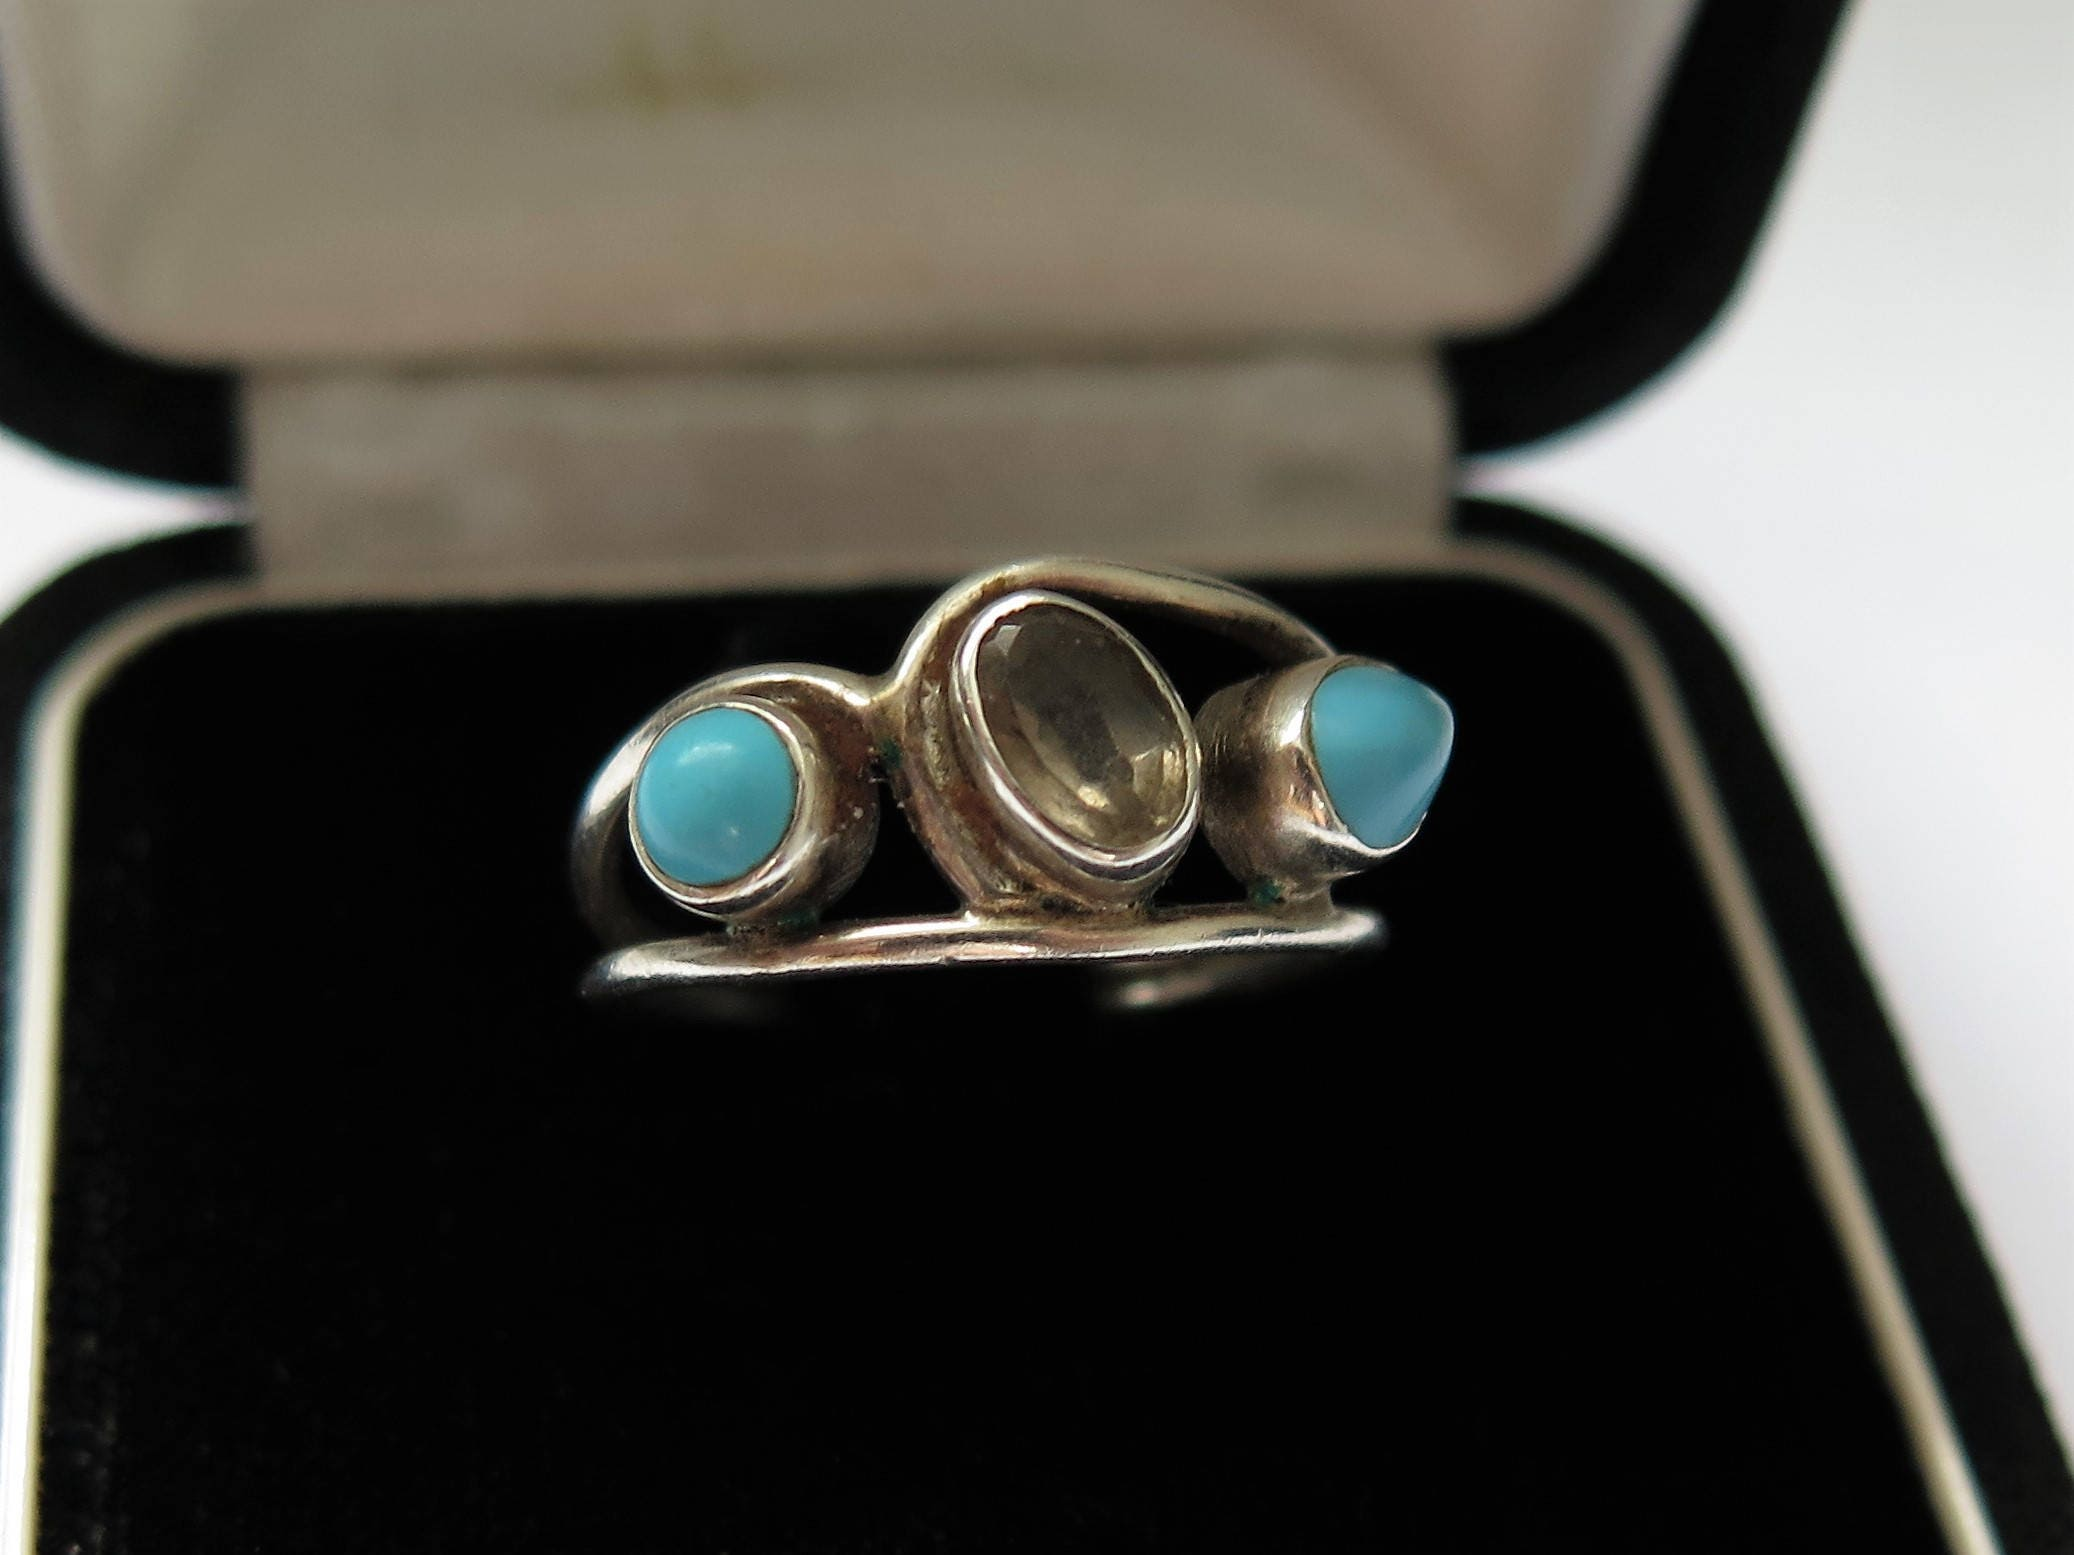 Vintage Turquoise And Smoky Quartz Silver flower Ring Size N6 34 1970s80s Jewellery Jewelry